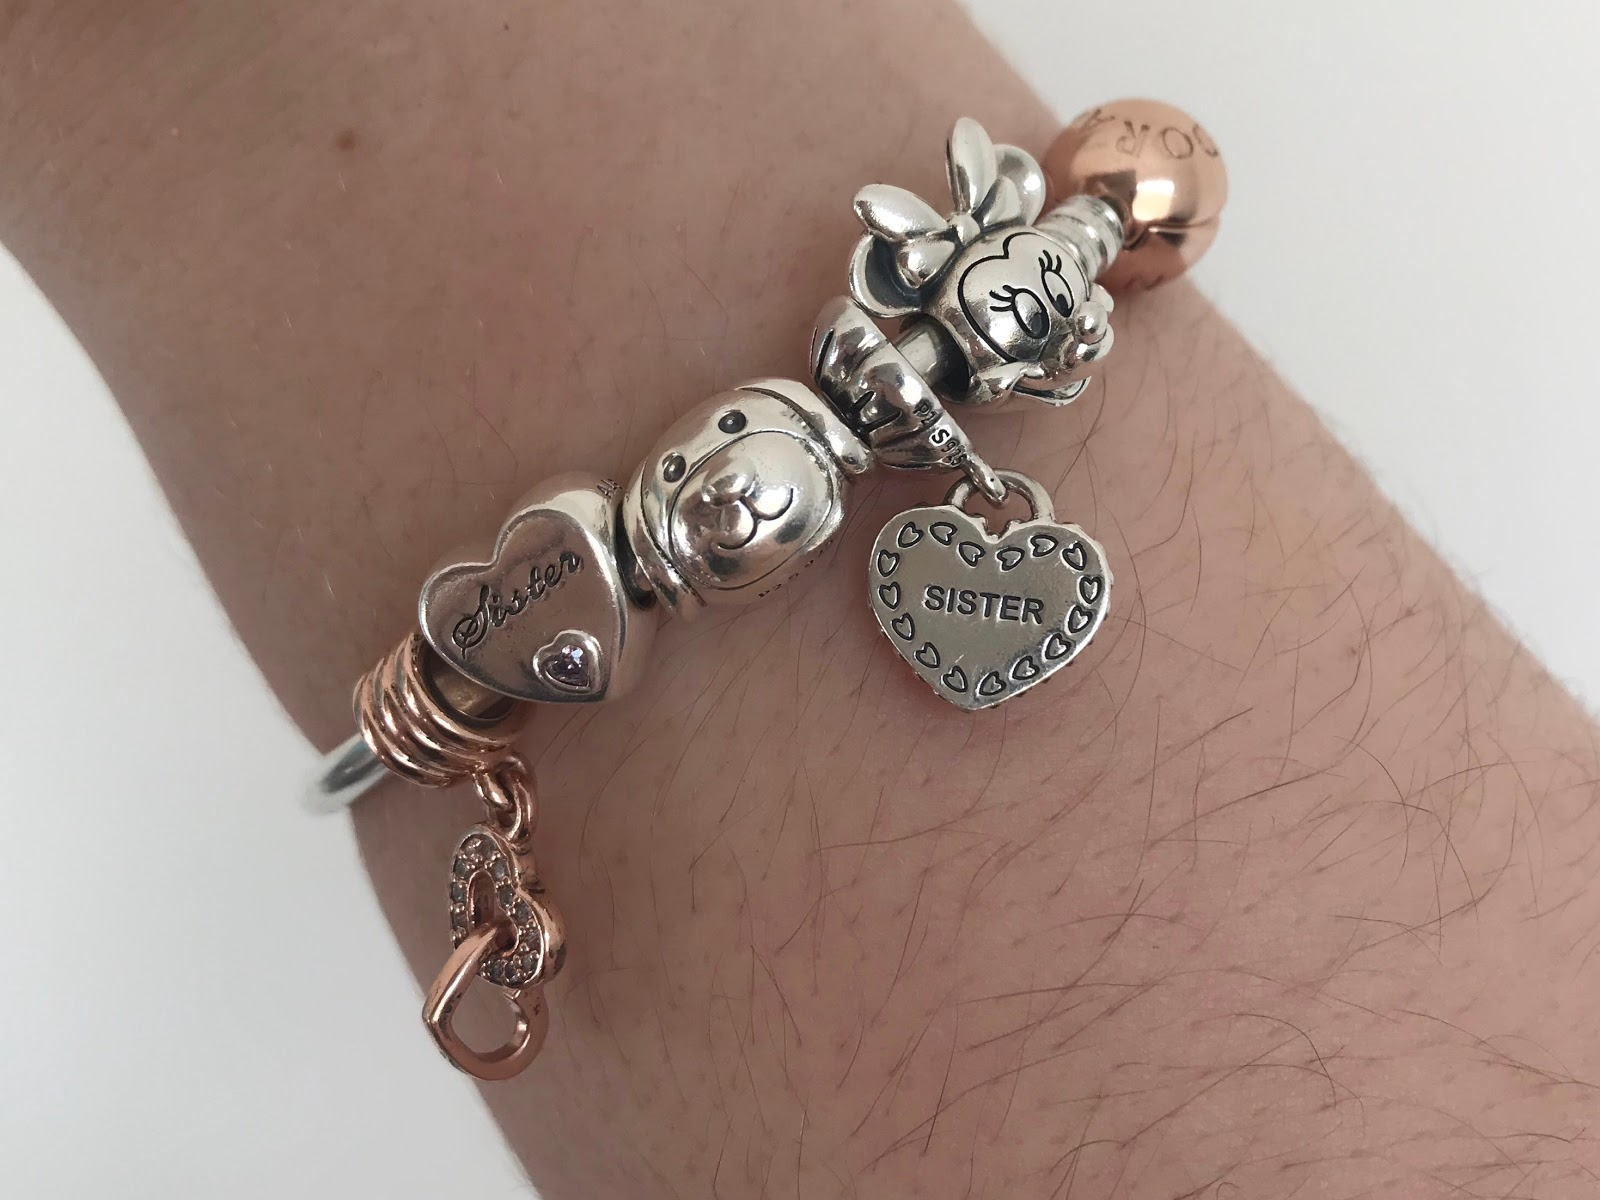 pandora charms story rose gold bracelet memories present gift christmas shopping girlfriend sister silver bangle